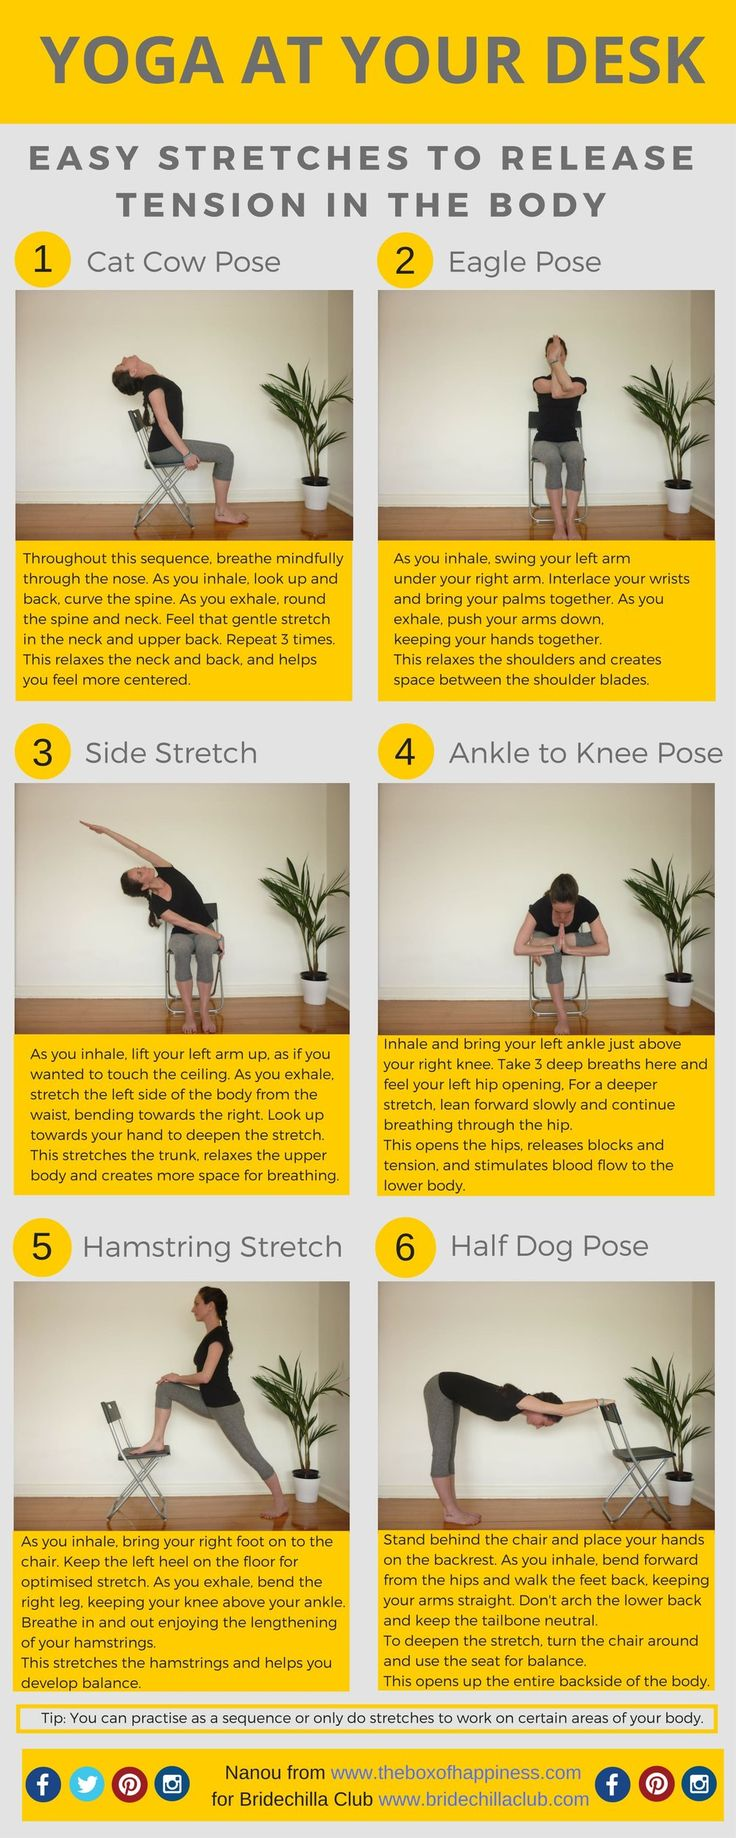 6 powerful & easy yoga moves to beat stress at your desk